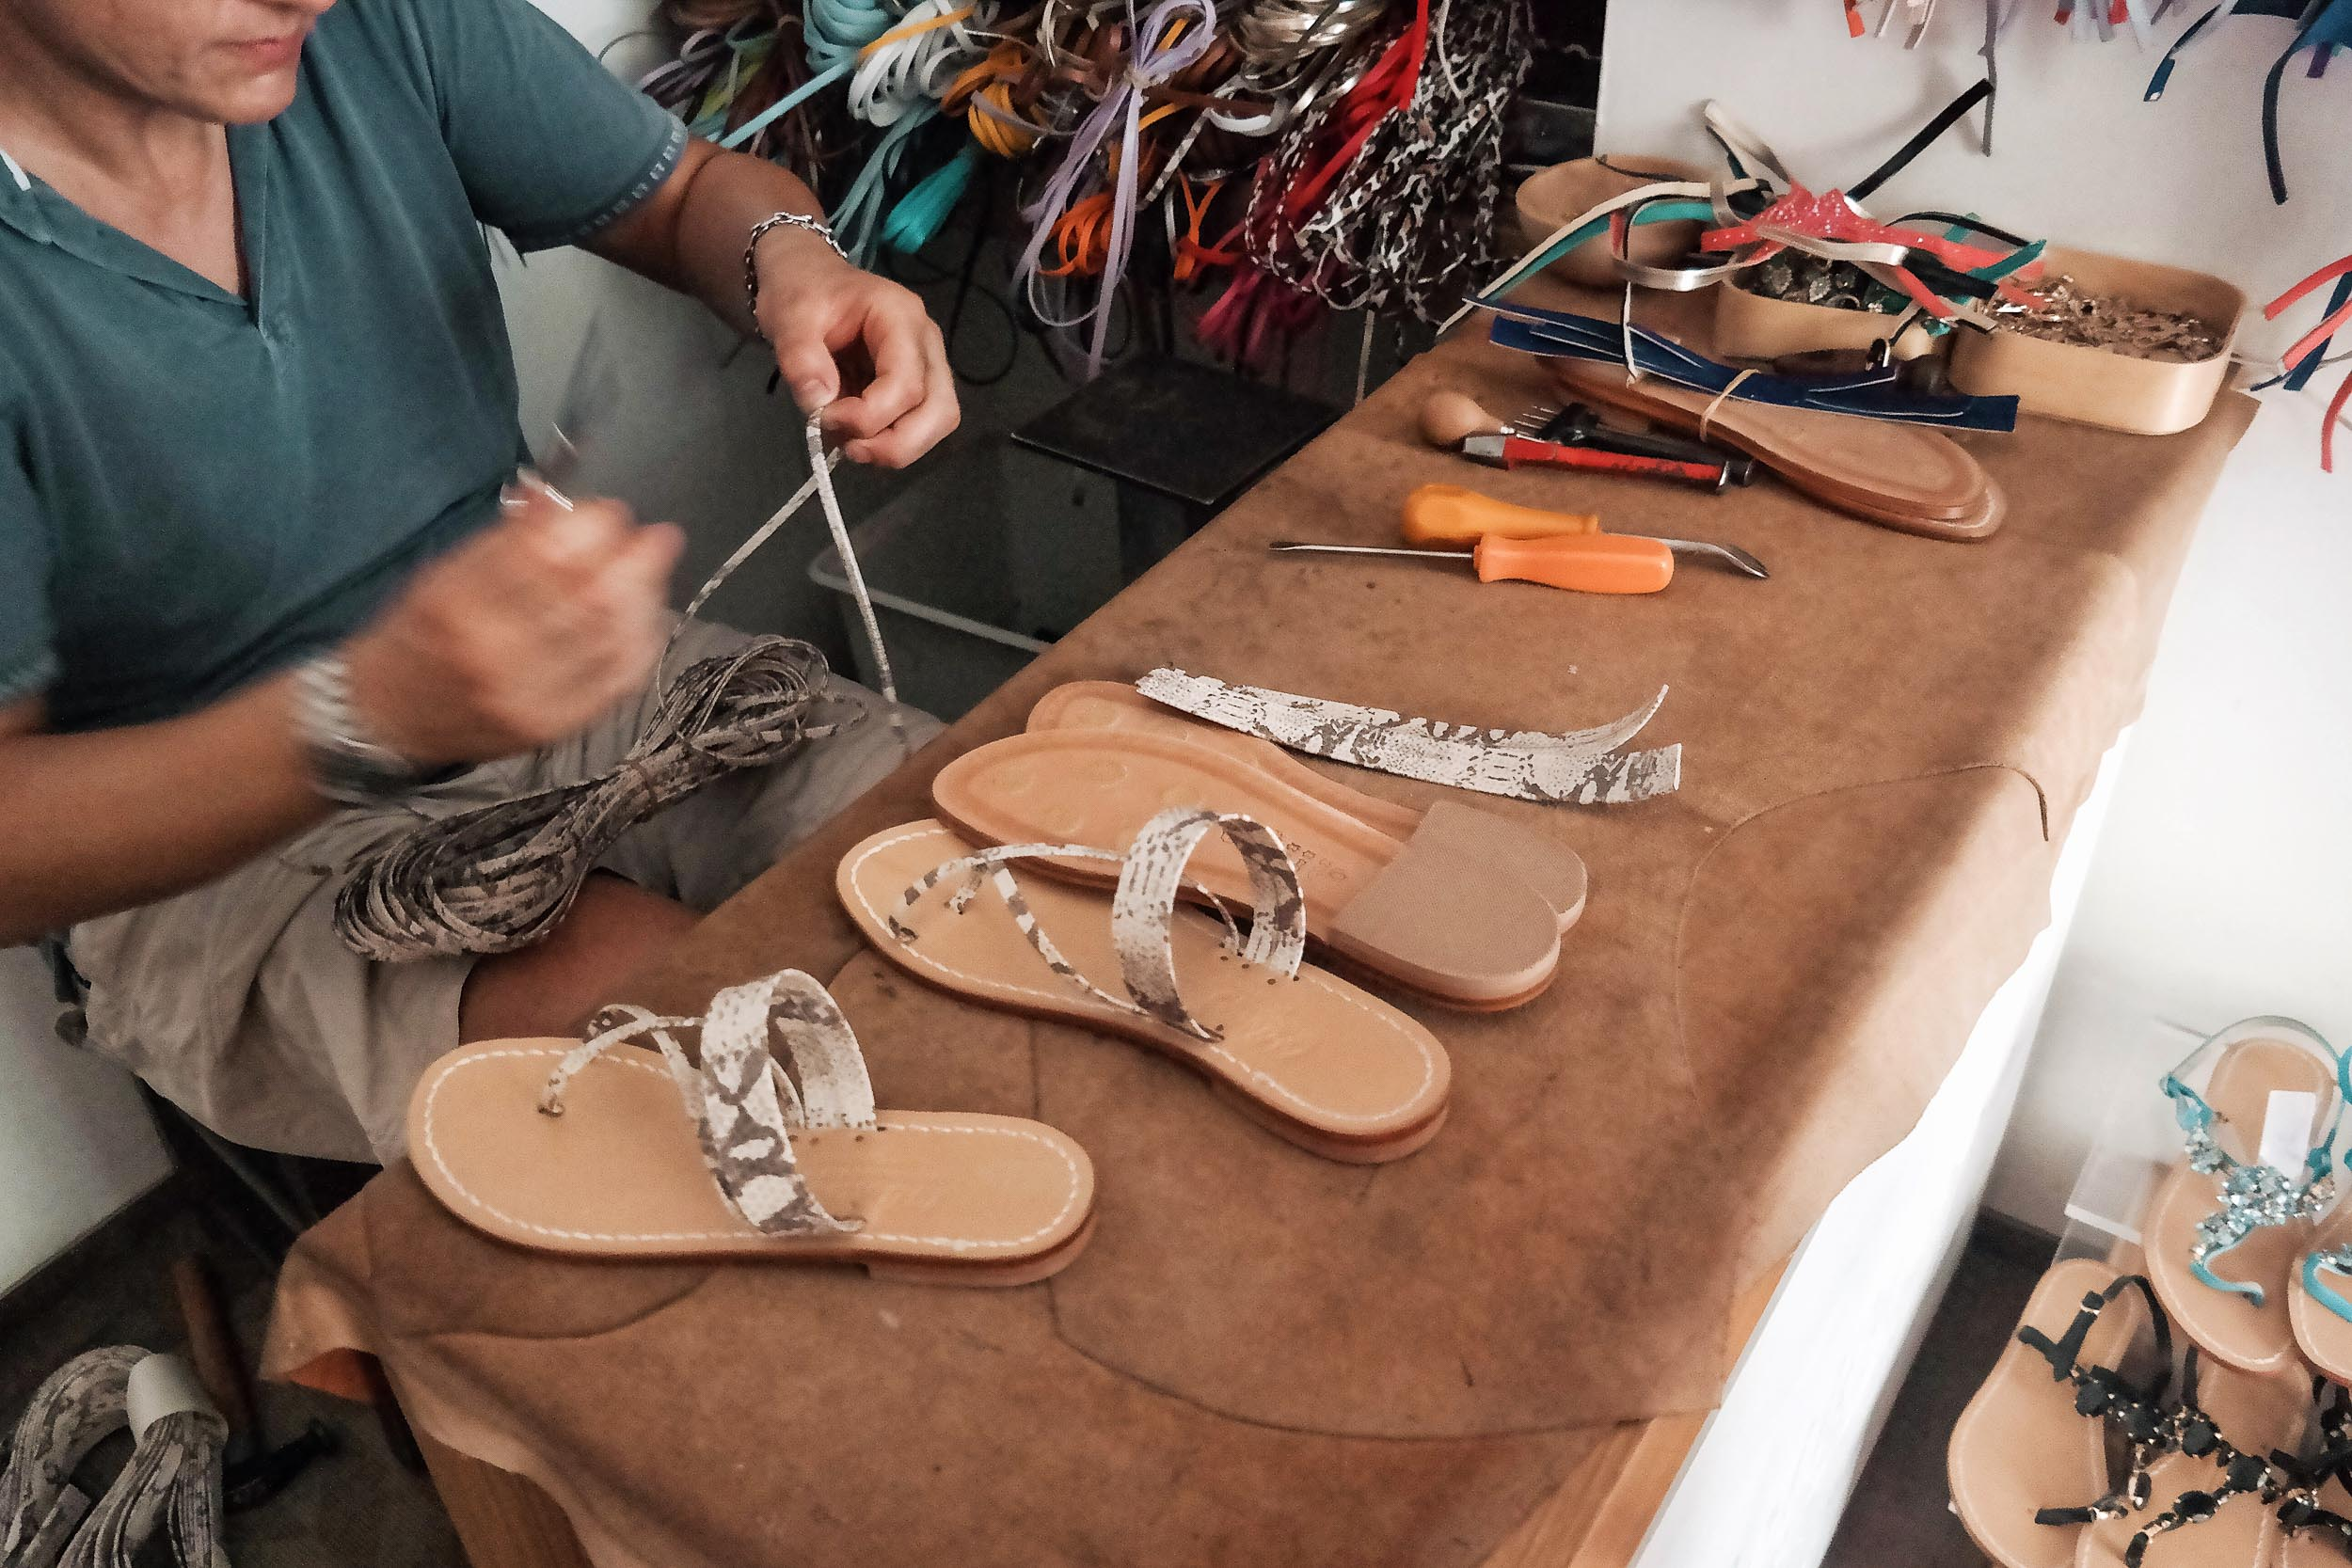 When on the Amalfi Coast, you must buy local, handmade, custom sandals! They are known for it.